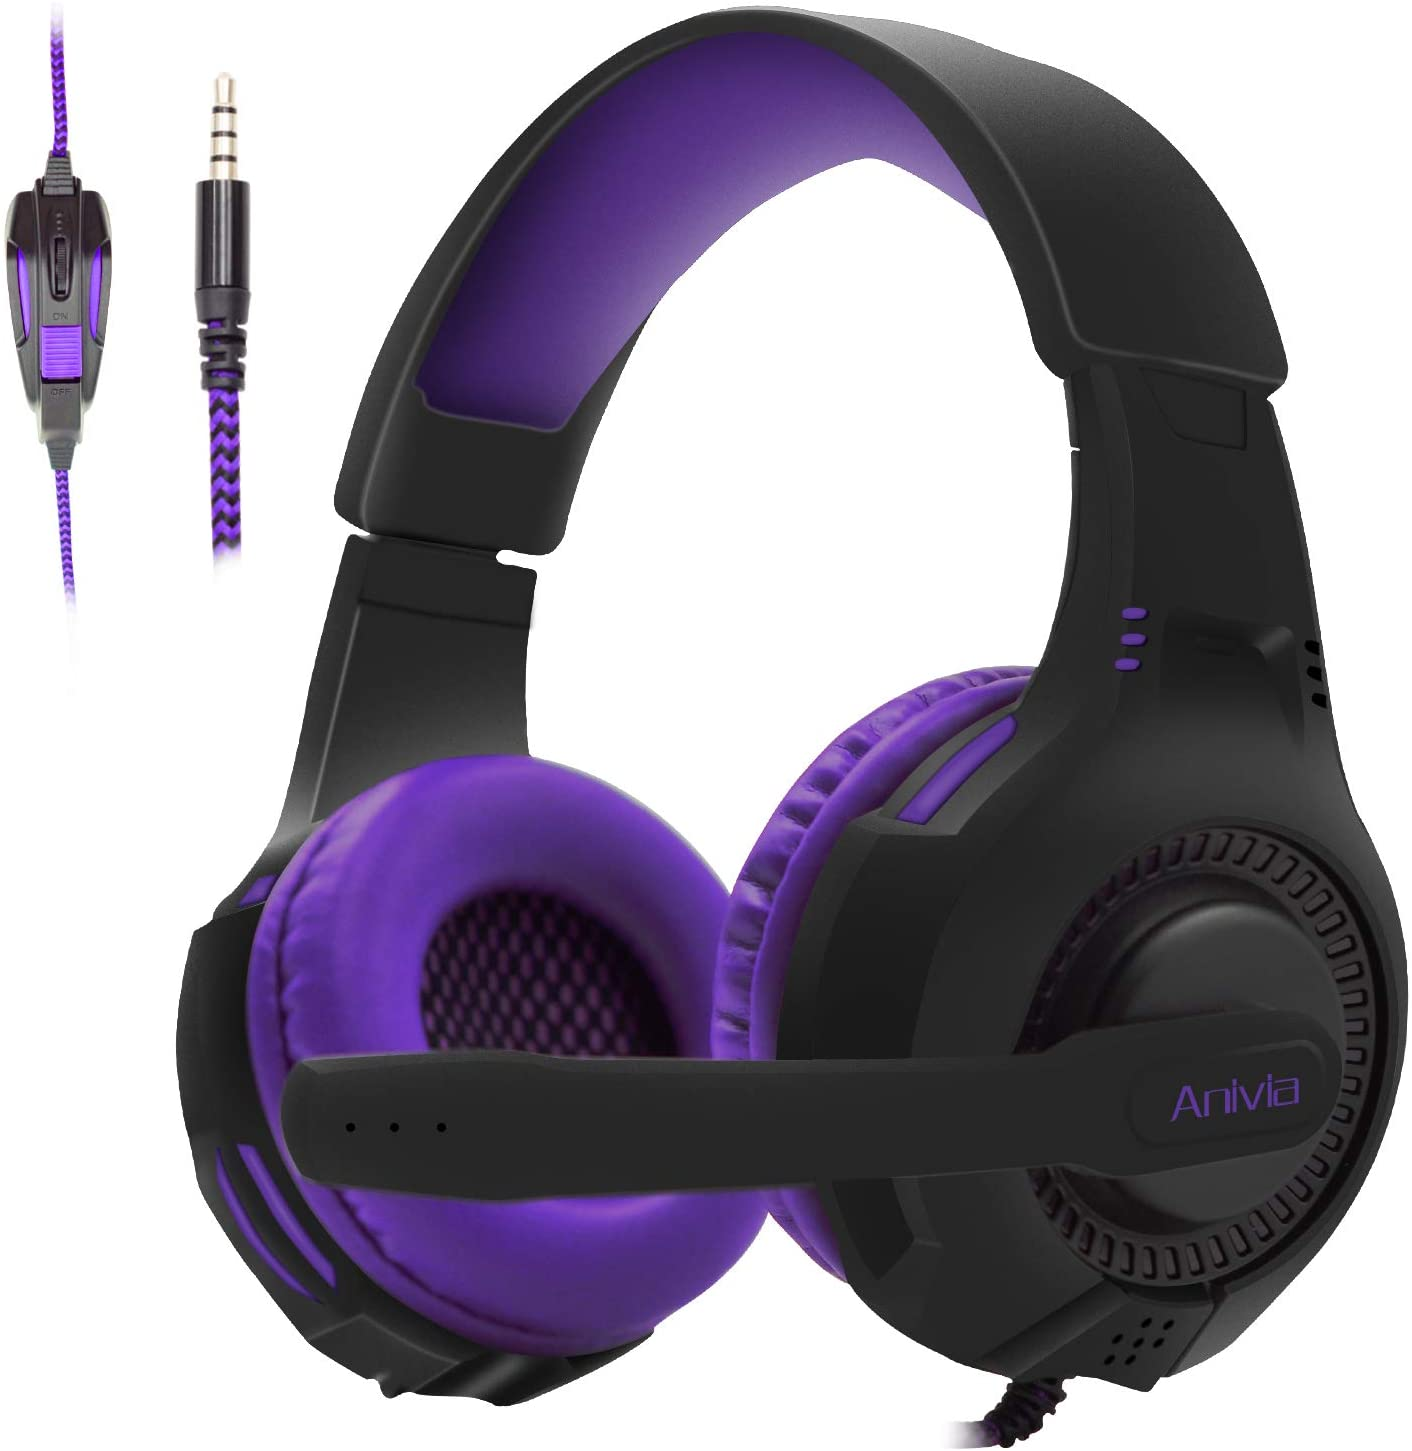 Anivia AH28 gaming headset has highly sensitive Omnidirectional microphones that offer clearer sound effects and voice quality along with reduced background noise